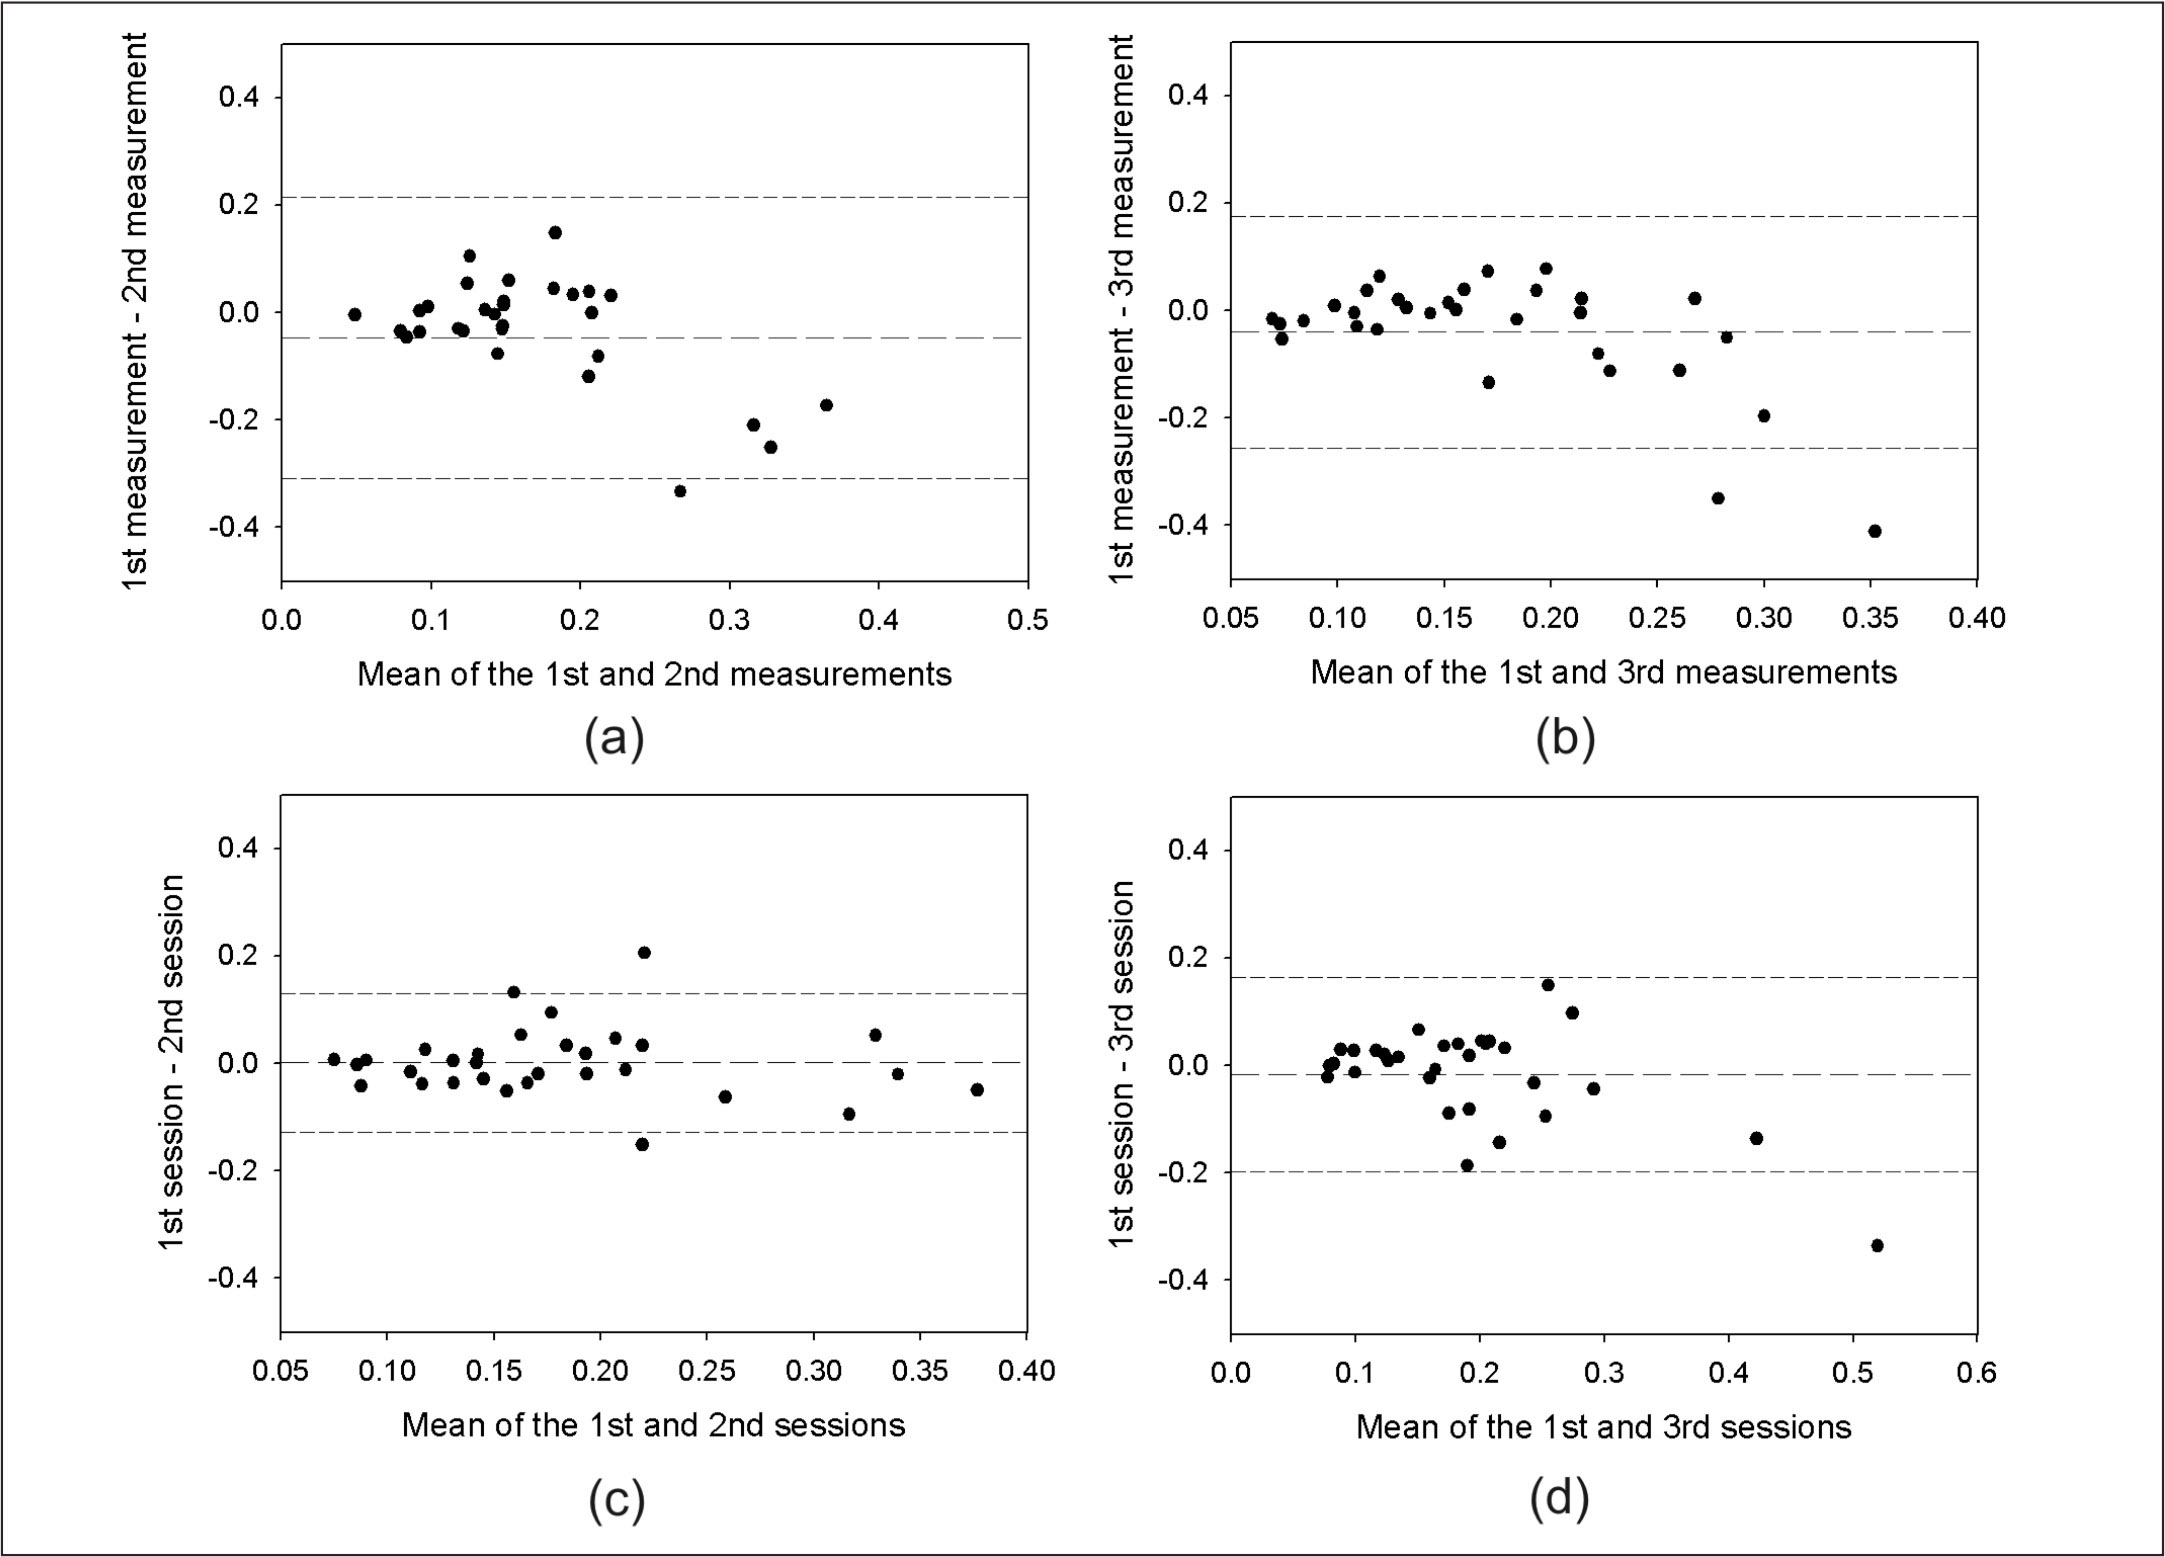 Plots showing the mean of the differences and the corresponding 95% confidence limit for the root mean square of higher-order aberrations computed from the third to the fifth order parameter when the (A) first and second measurements and (B) first and third measurements of the first session were compared. The differences when the (C) first and second sessions and (D) first and third sessions were compared are also shown. Values are in micrometers (μm).